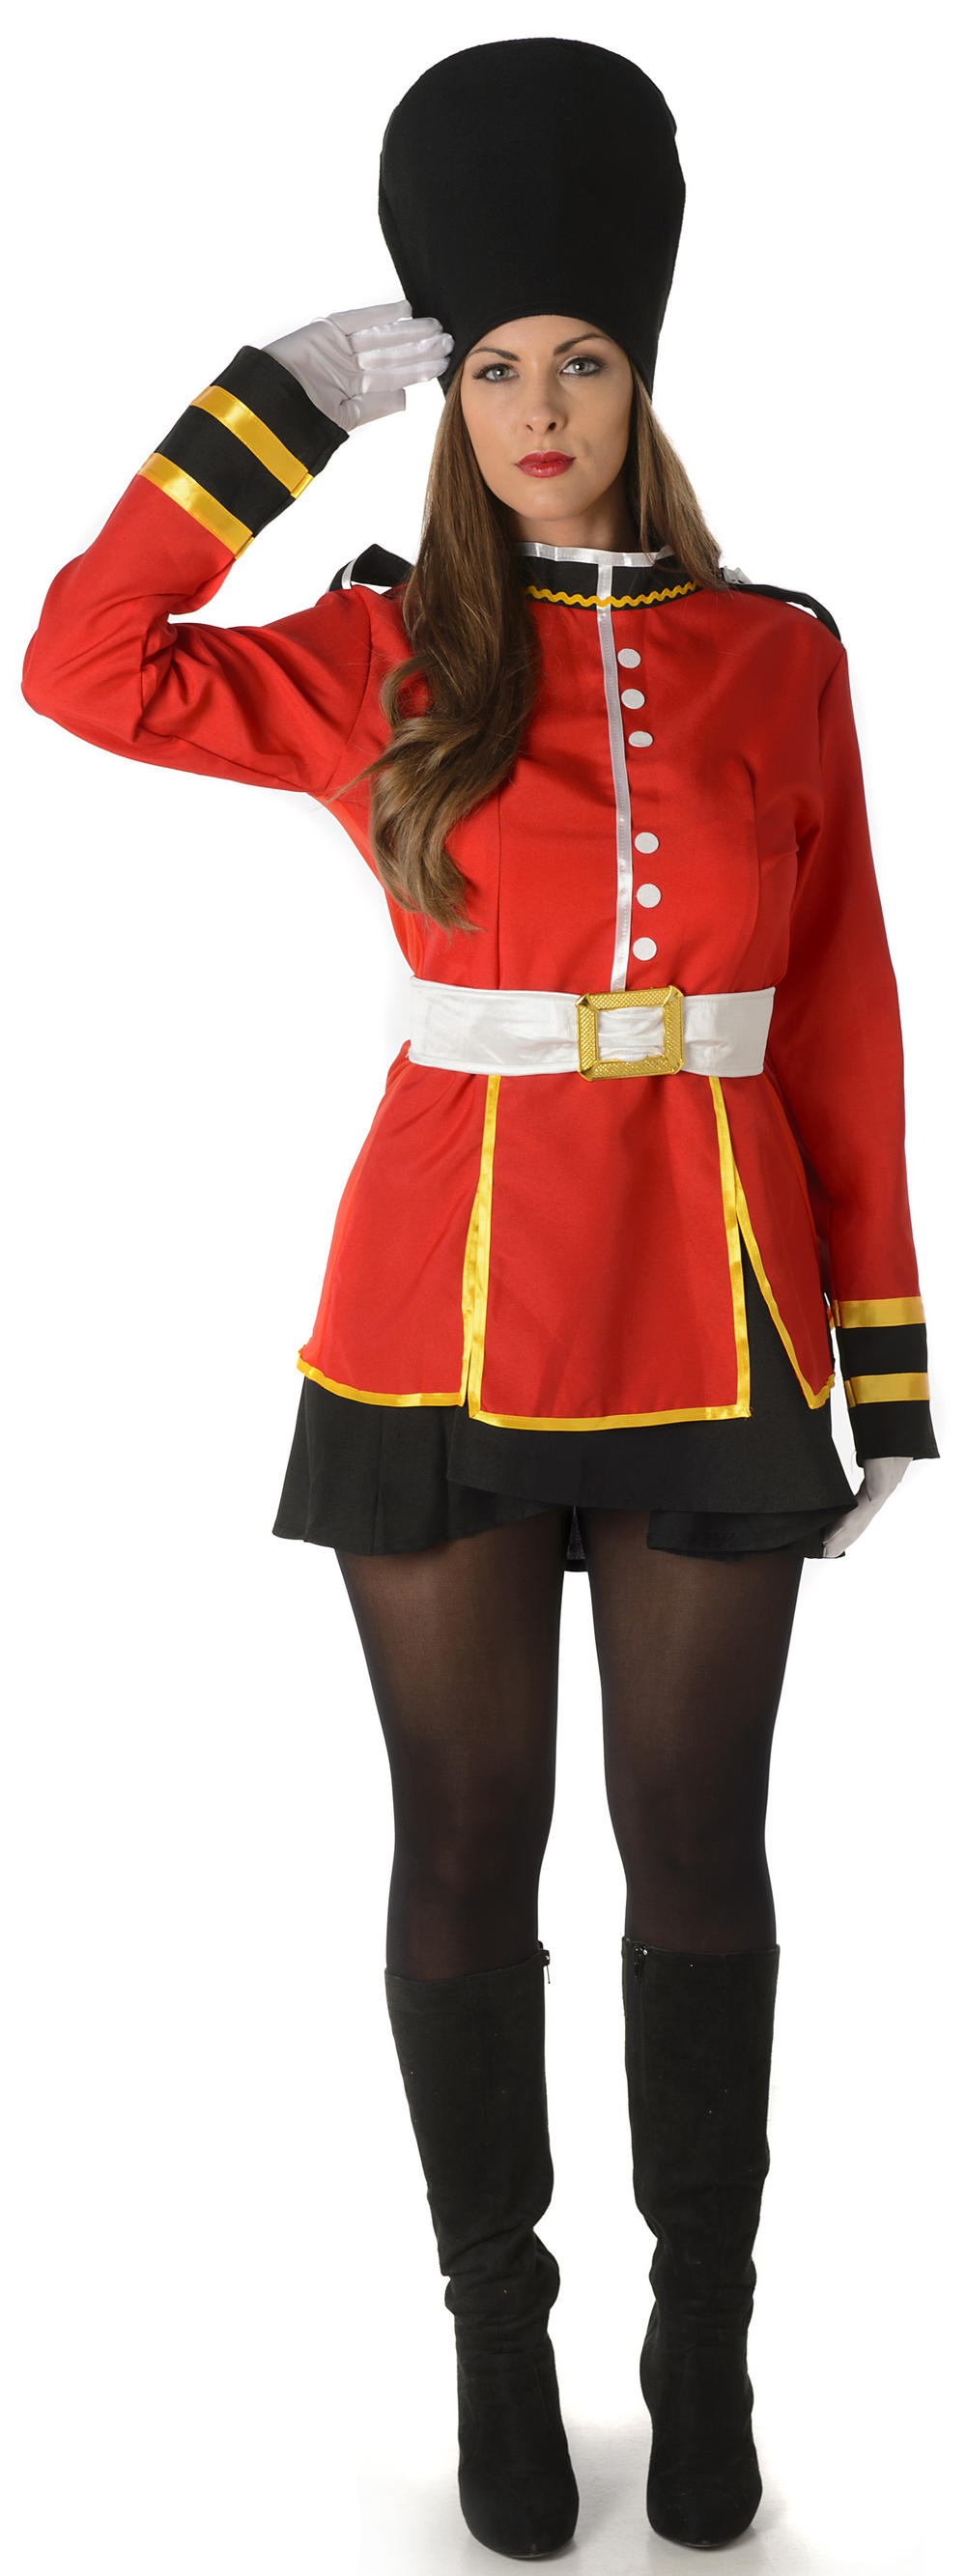 Sweet Royal Guards Ladies Costume Letter Costumes